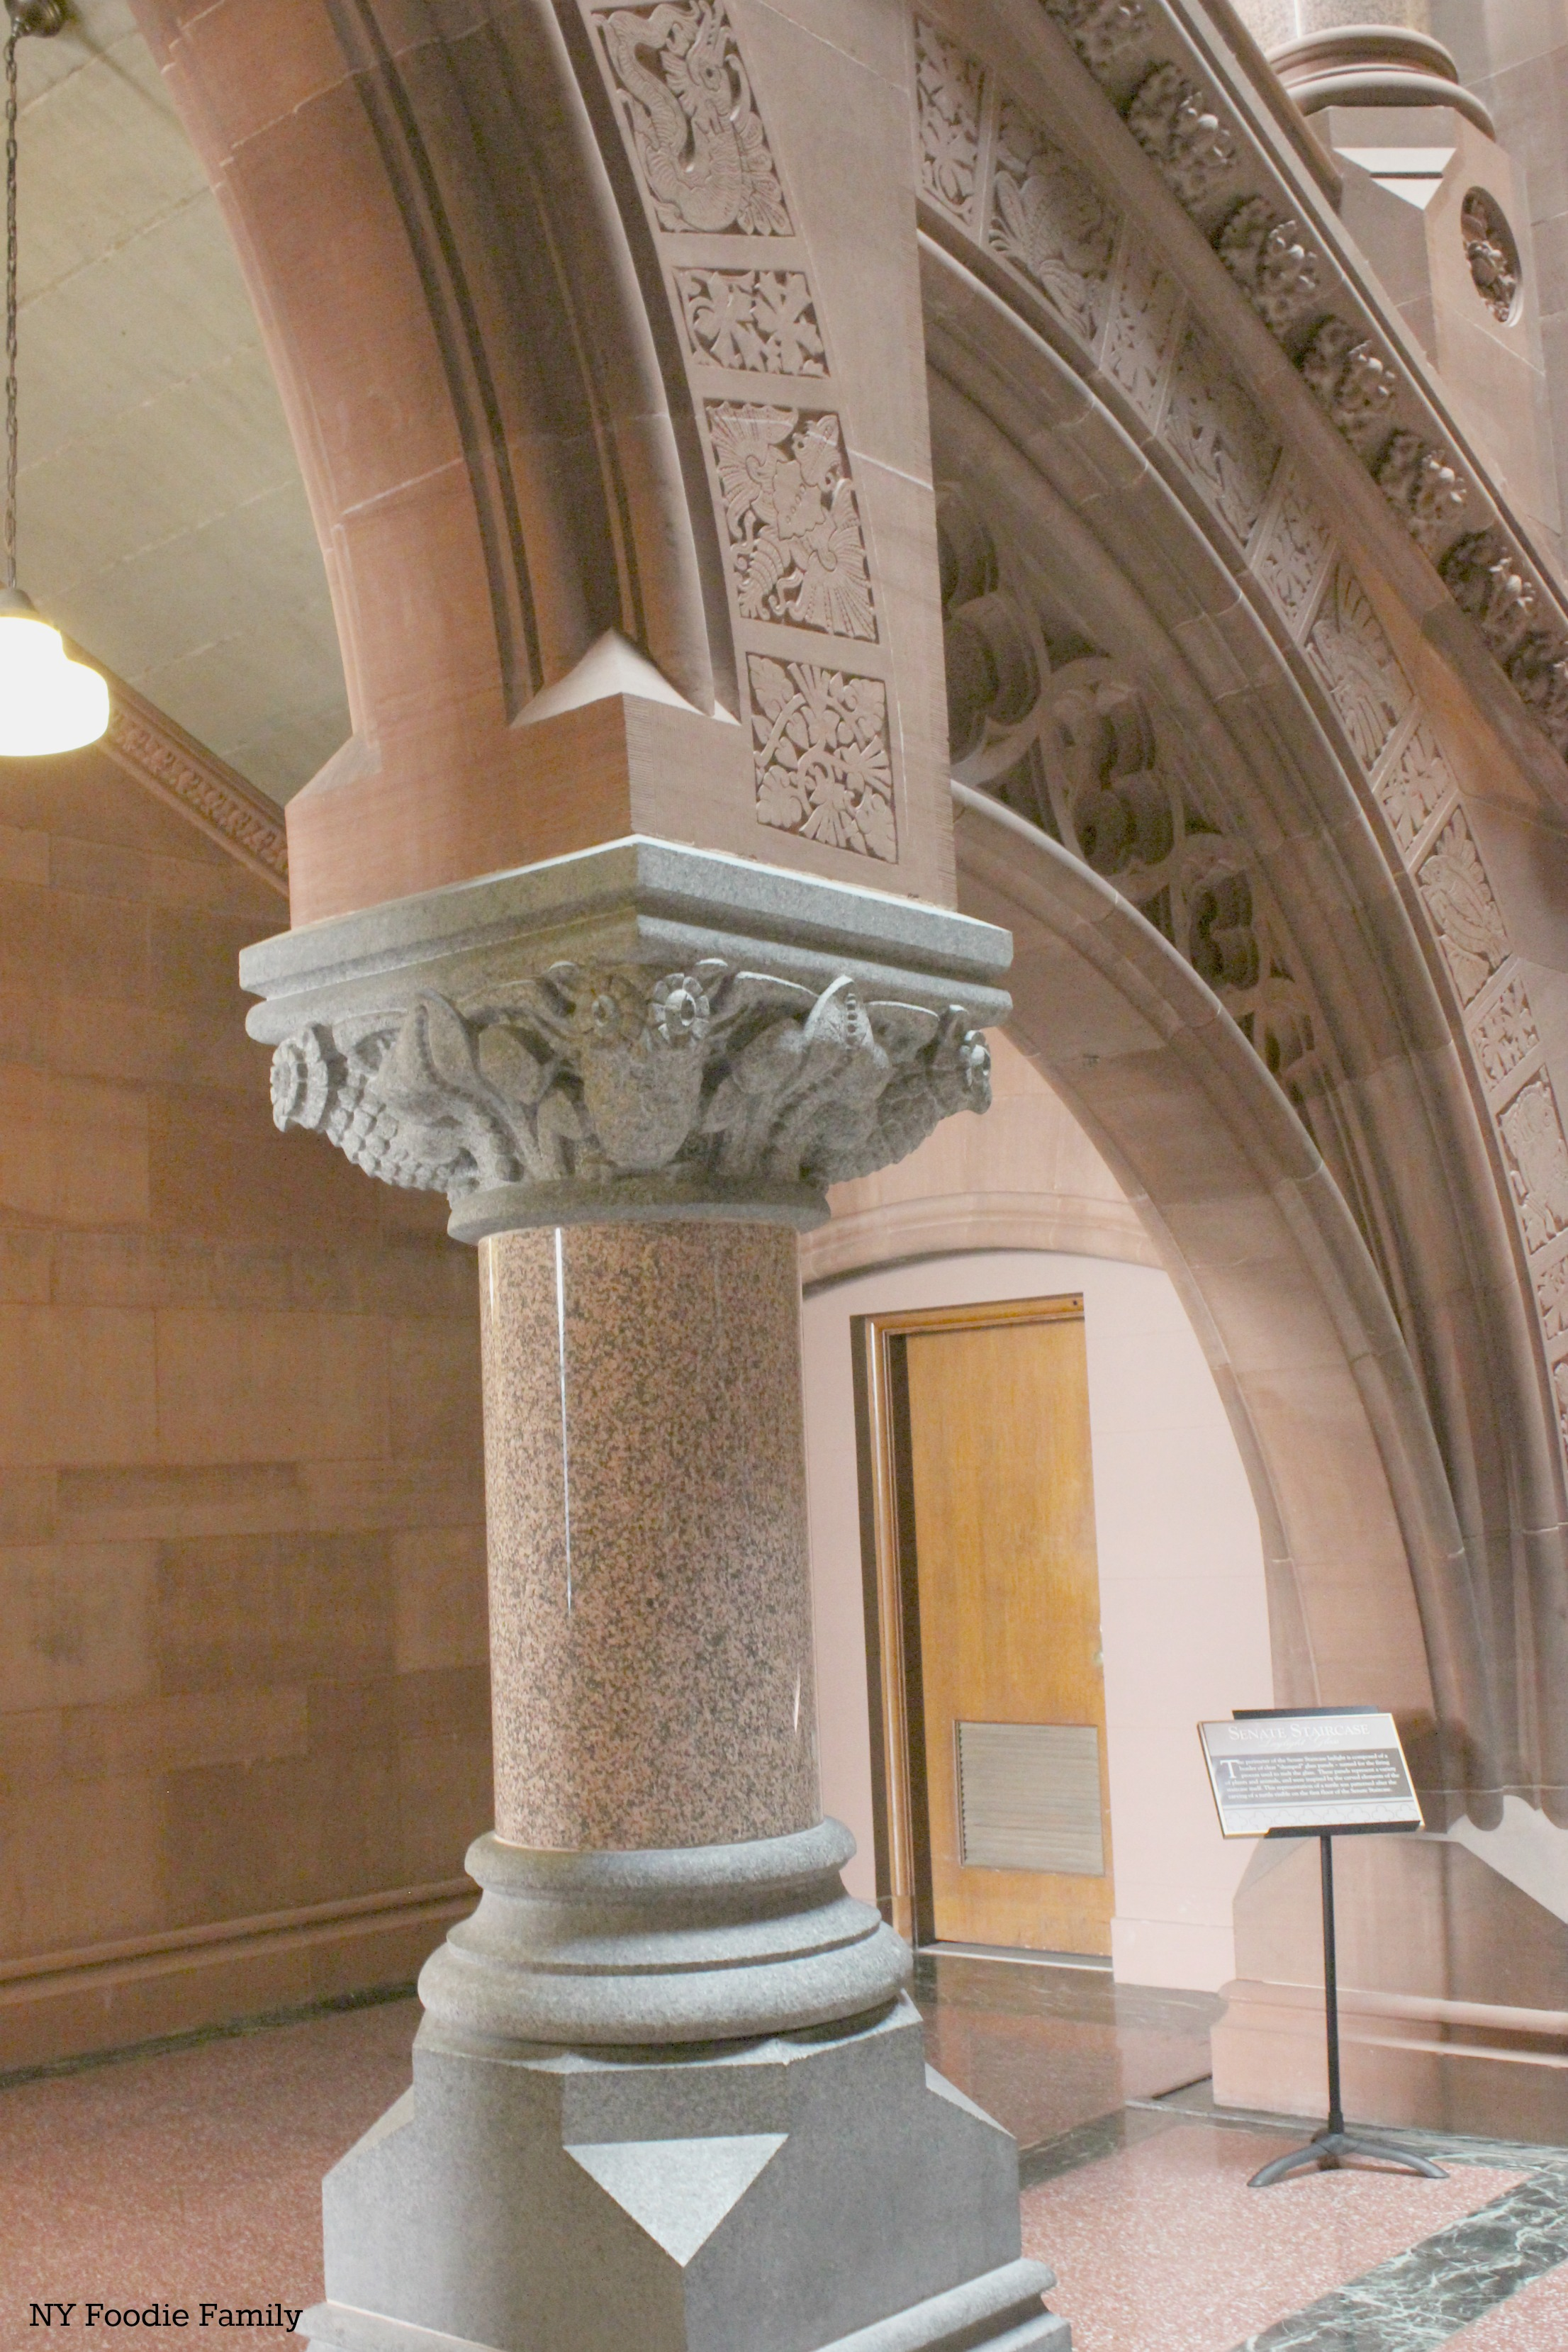 New york albany county albany 12224 - The First Stop On The Tour Is The Senate Staircase This Staircase Went Through A Major Renovation And The Final Results Were Unveiled By Governor Andrew